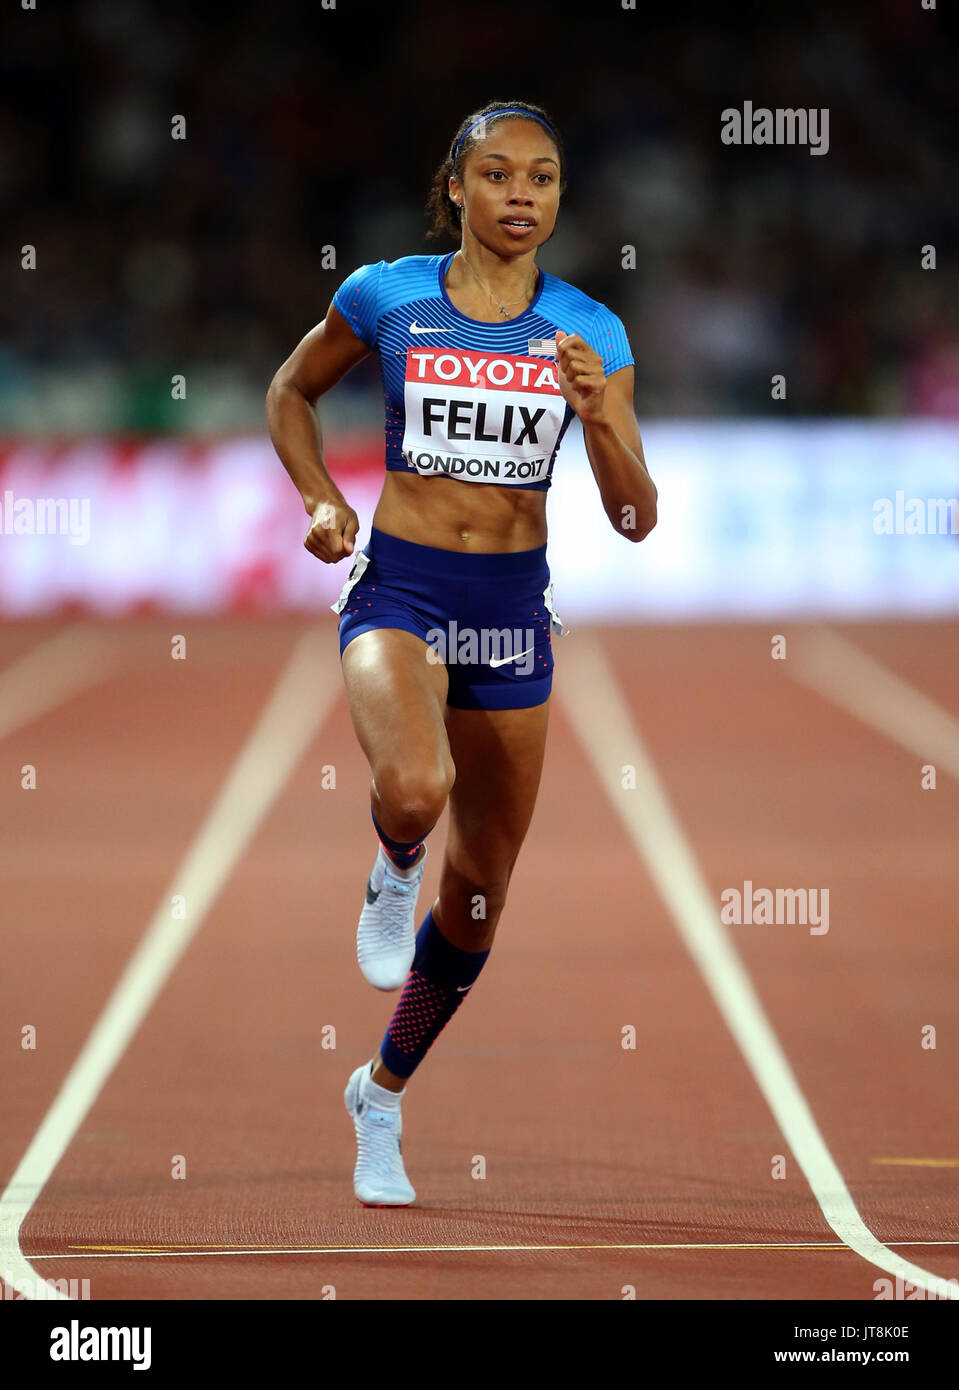 Allyson Felix 400 Metres World Athletics Championships 2017 London Stam, London, England 07 August 2017 Credit: Allstar Picture Library/Alamy Live News - Stock Image